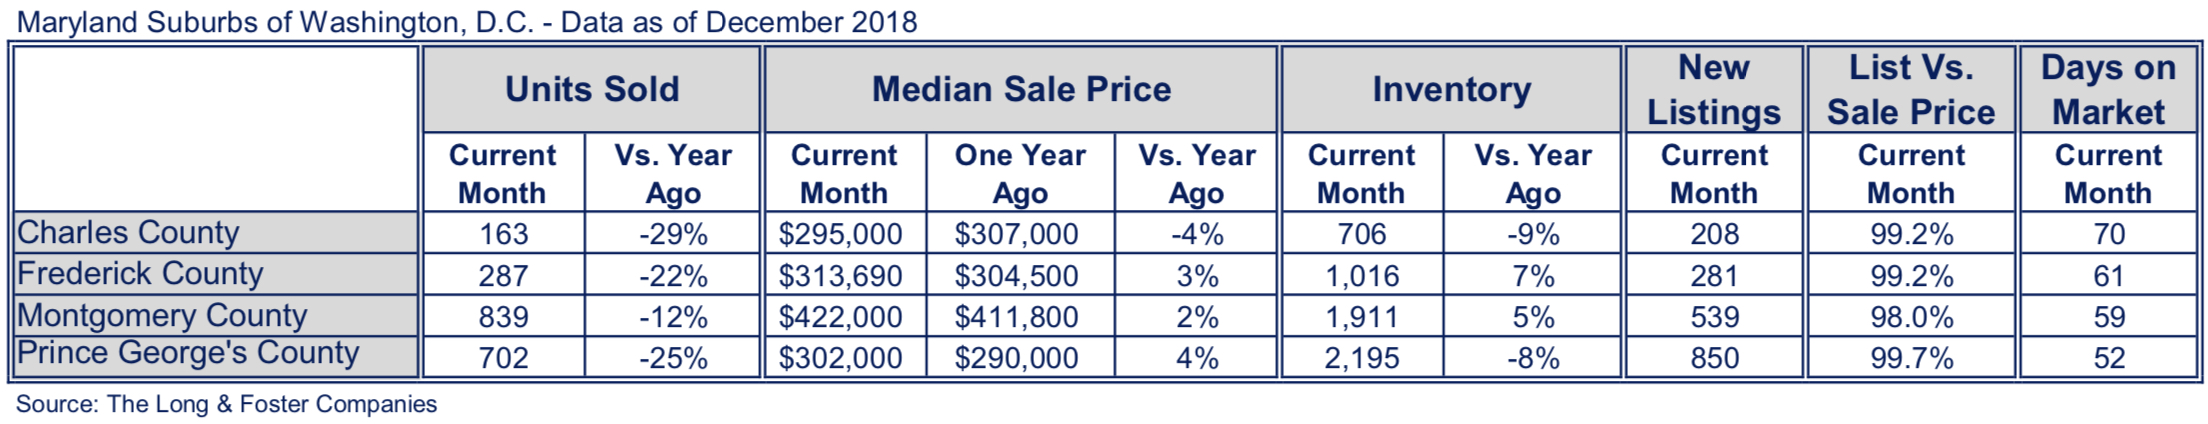 Suburban Maryland & Montgomery County Market Minute December 2018